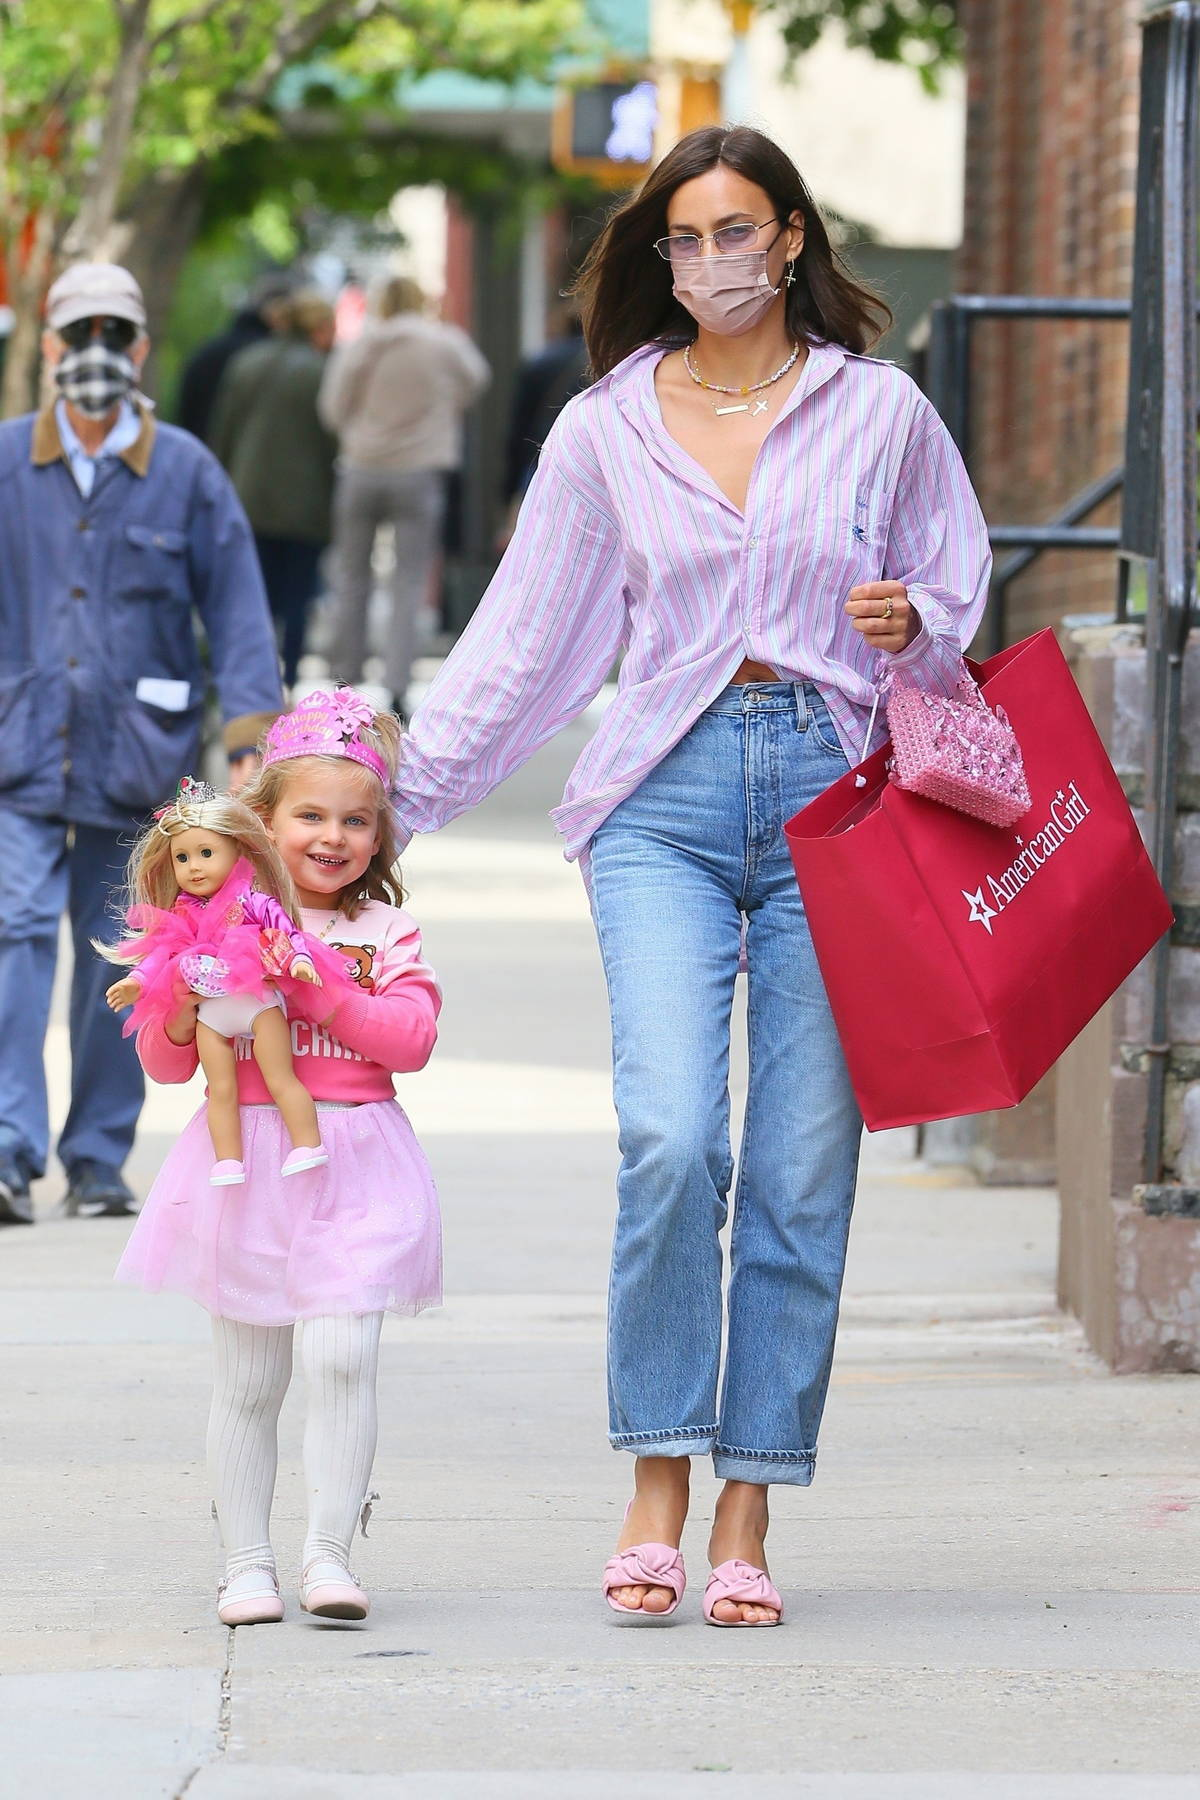 Irina Shayk heads home with her daughter Lea after attending a birthday party at 'American Girl' in New York City